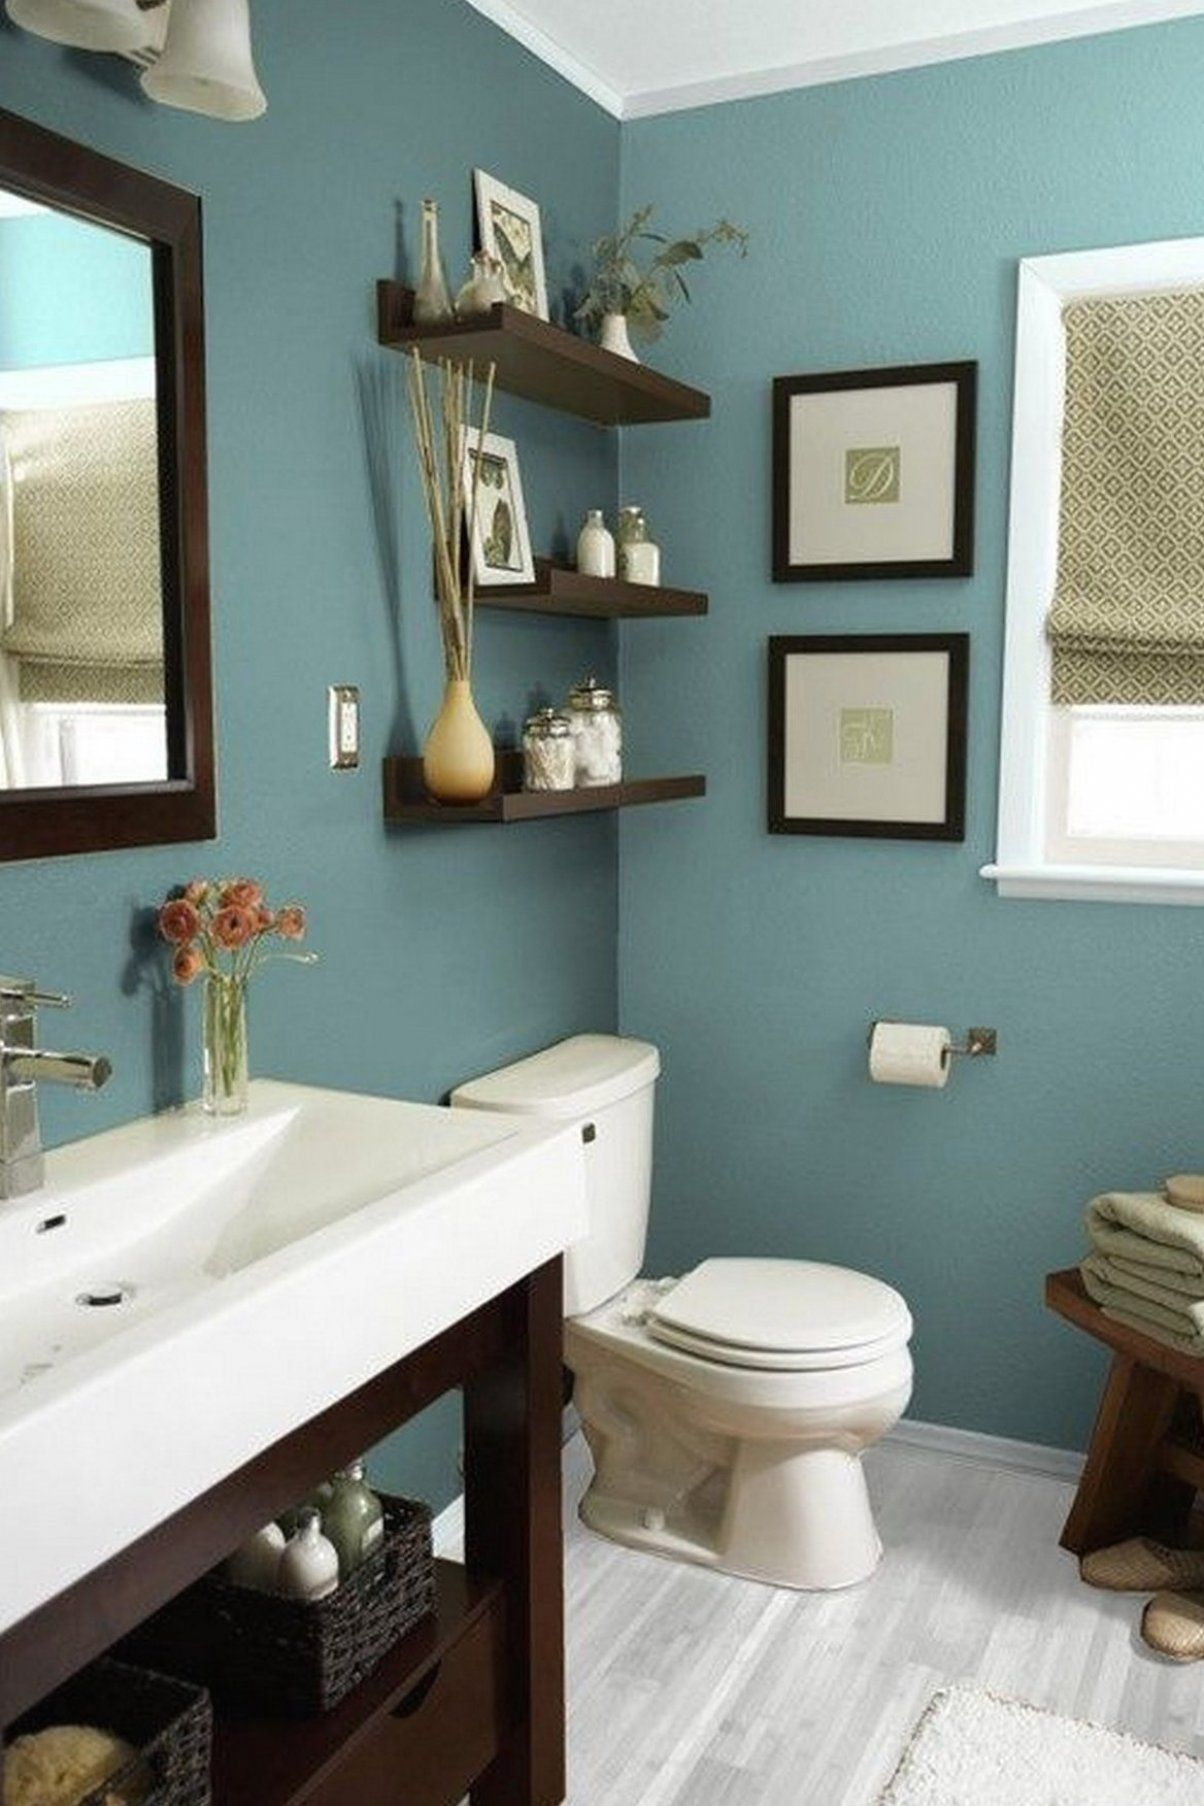 25 Best Bathroom Decor Ideas And Designs That Are Trendy Bathroom Decoration Bathroom Decoration Idea In 2020 Blue Bathroom Top Bathroom Design Small Bathroom Remodel